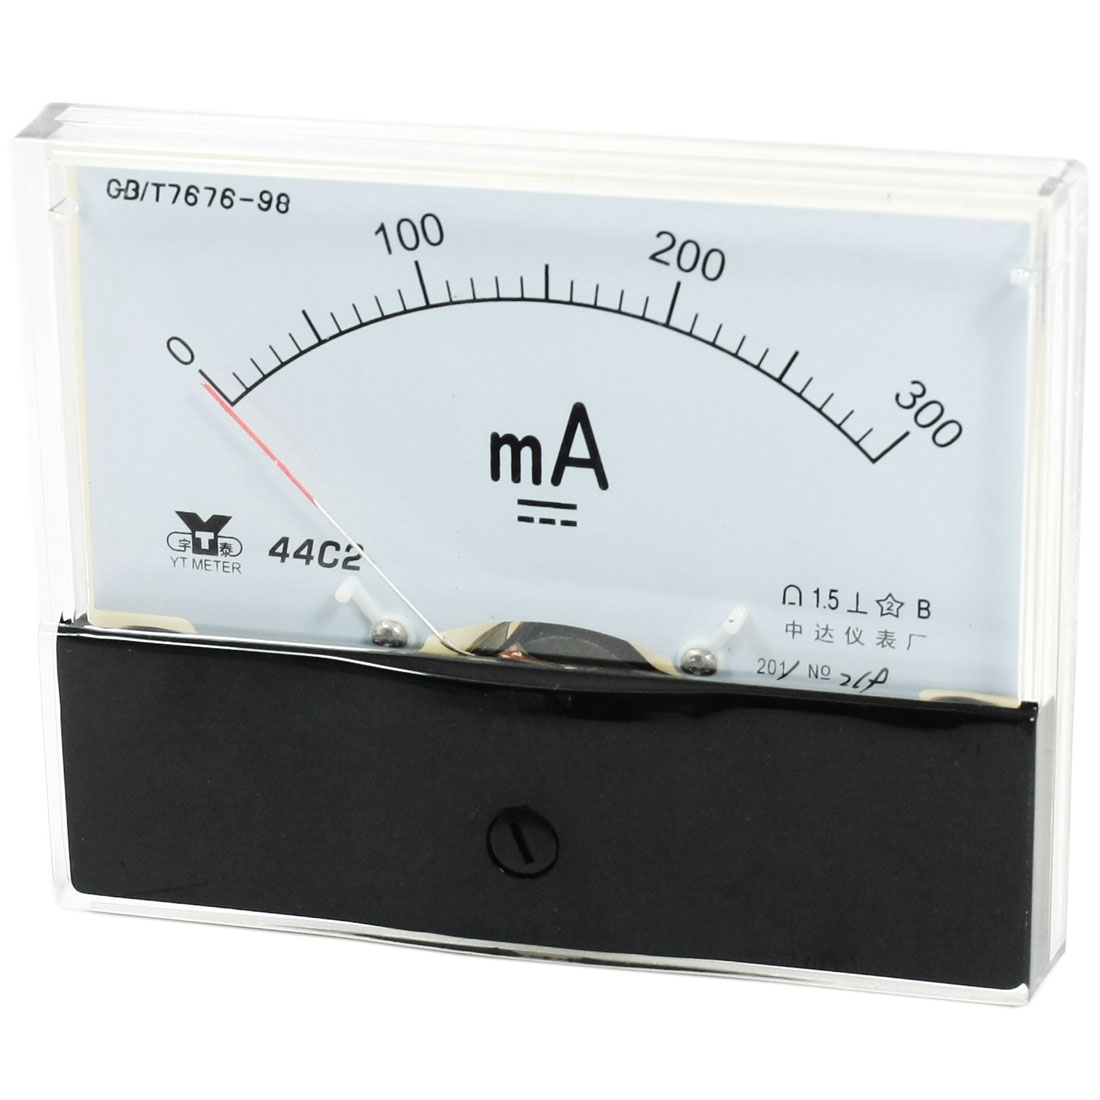 Rectangle Measurement Tool Analog Panel Ammeter Gauge DC 0 - 300mA Measuring Range 44C2